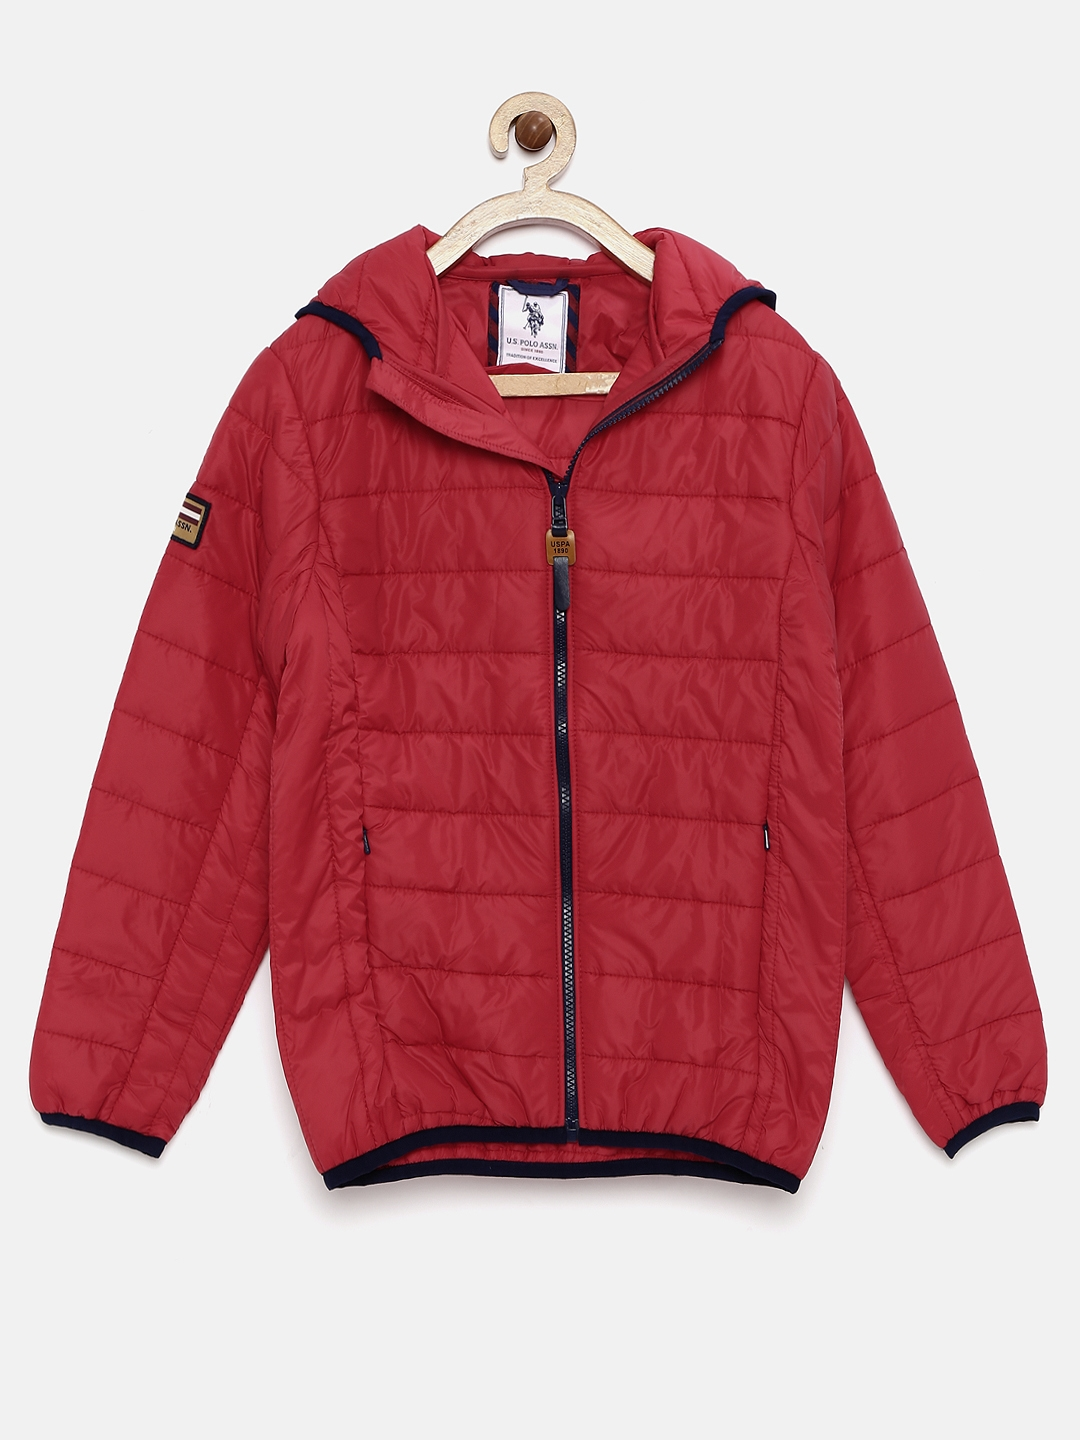 5a2a049b2e97 Buy U.S. Polo Assn. Kids Boys Red Hooded Padded Jacket - Jackets for ...